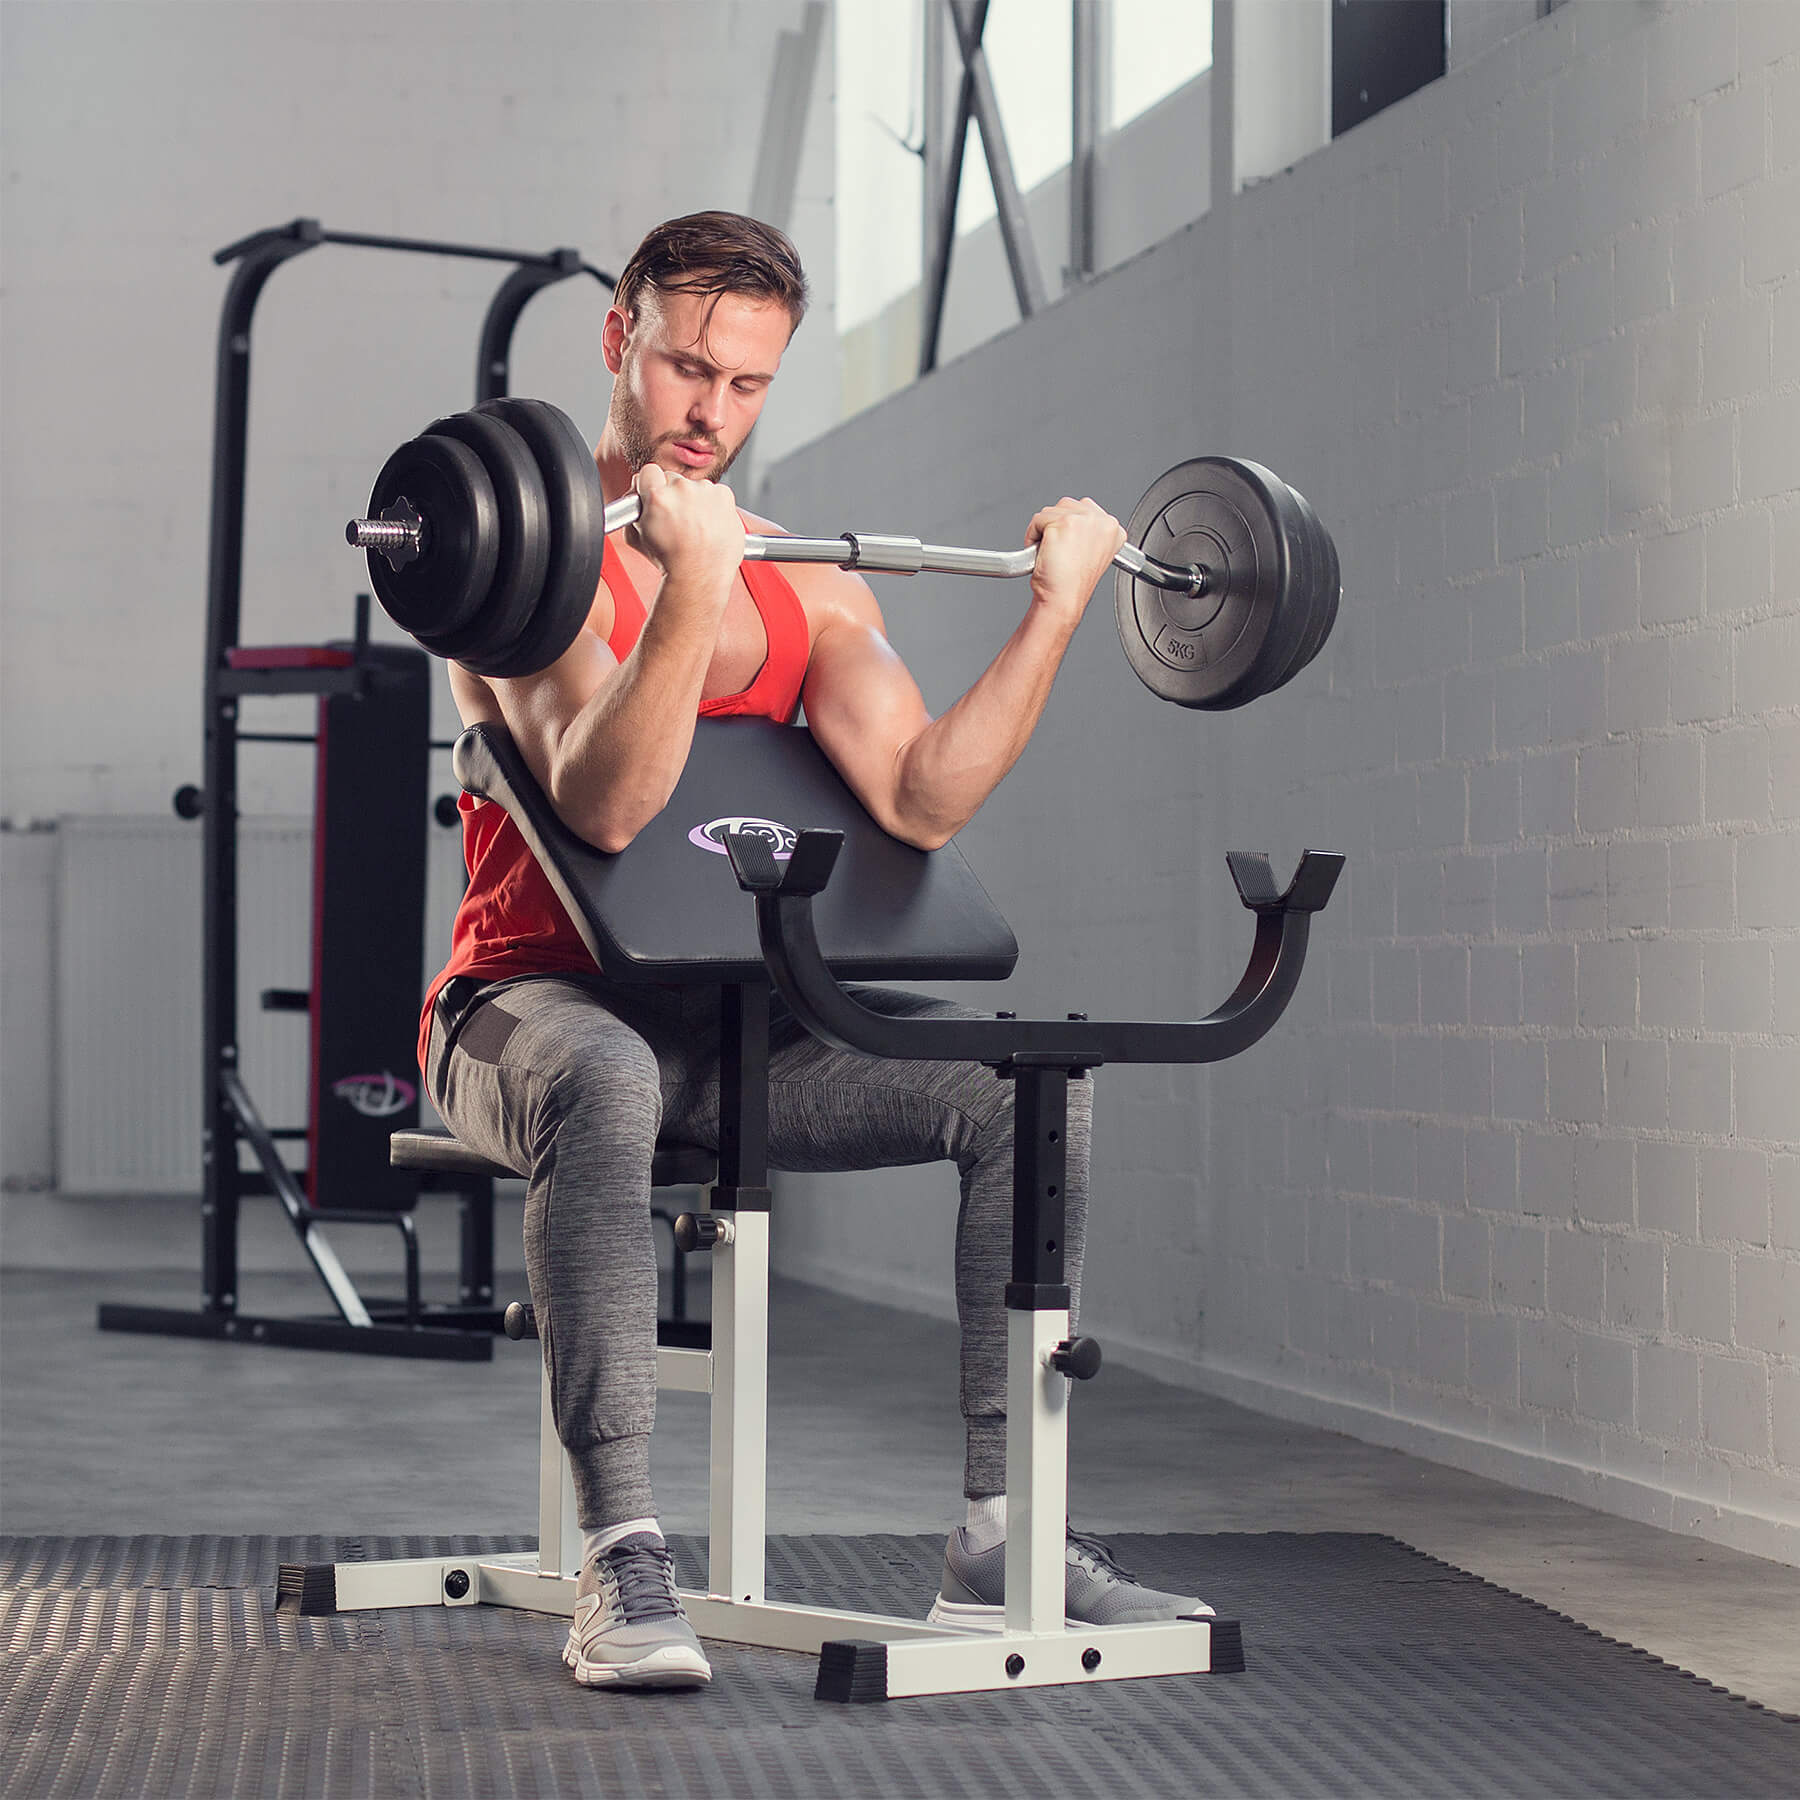 Preacher bicep arm curl bench training seated workout ...  Preacher Curls At Home